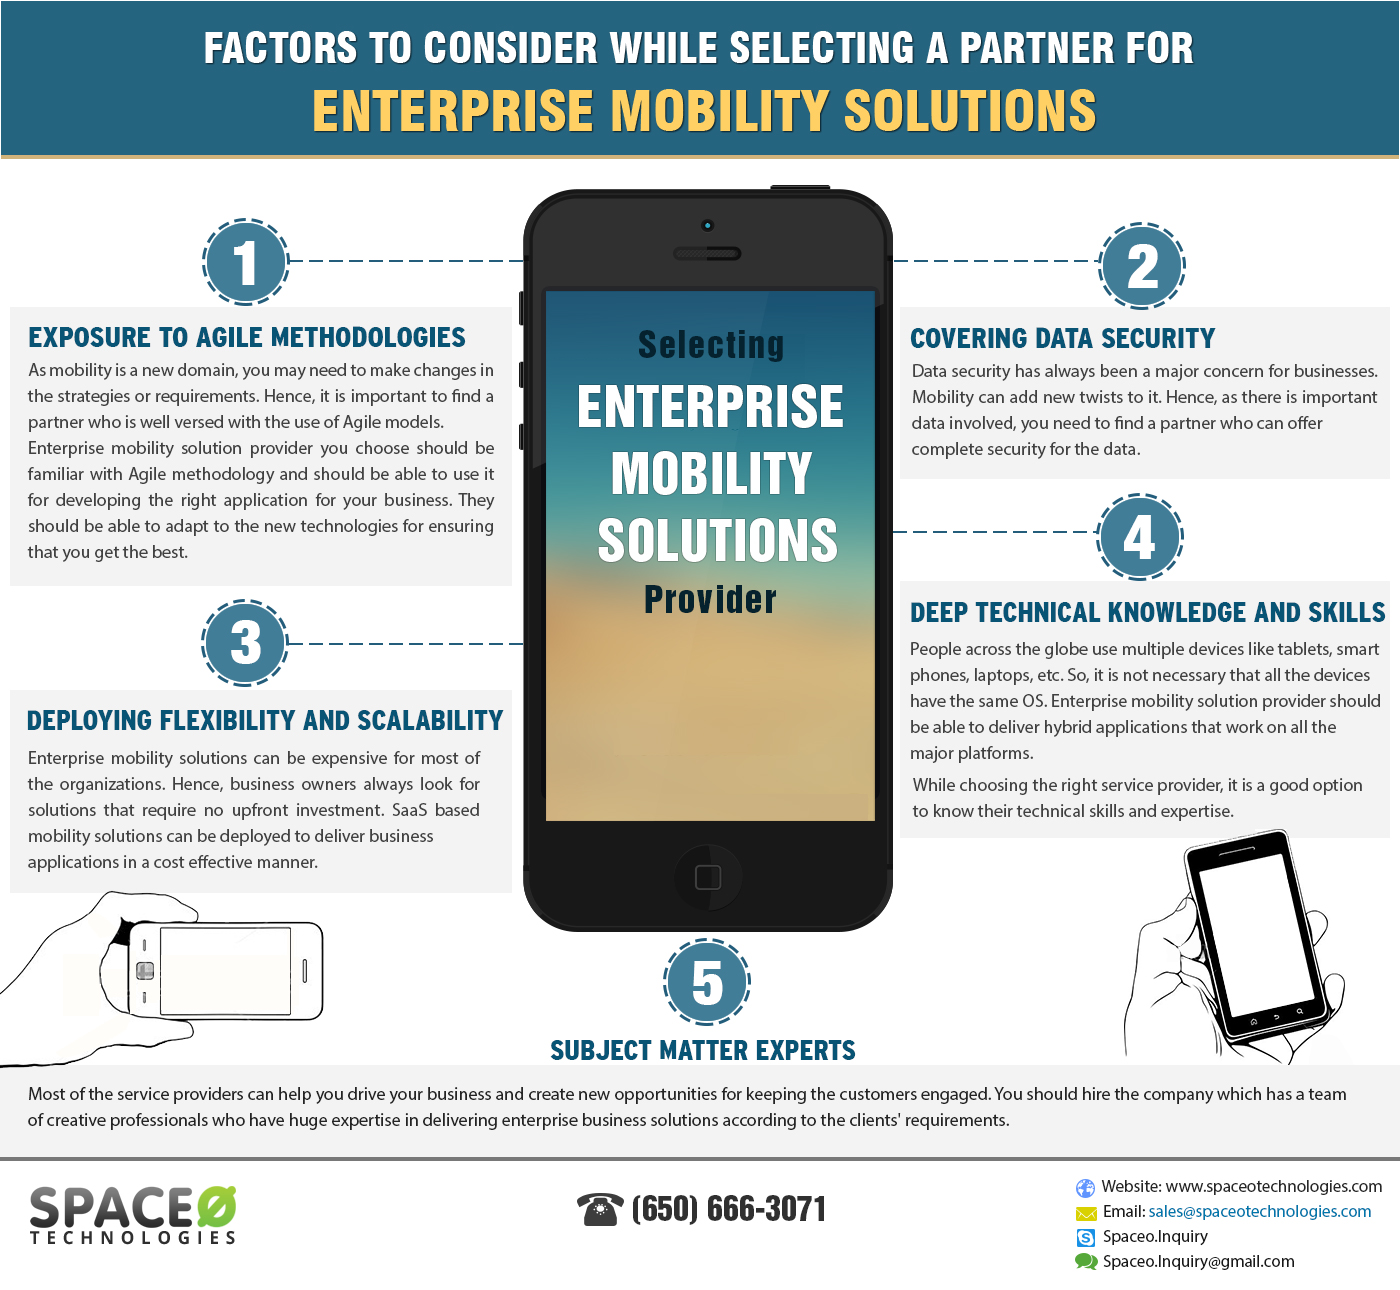 Choose Enterprise Mobility Solutions Provider